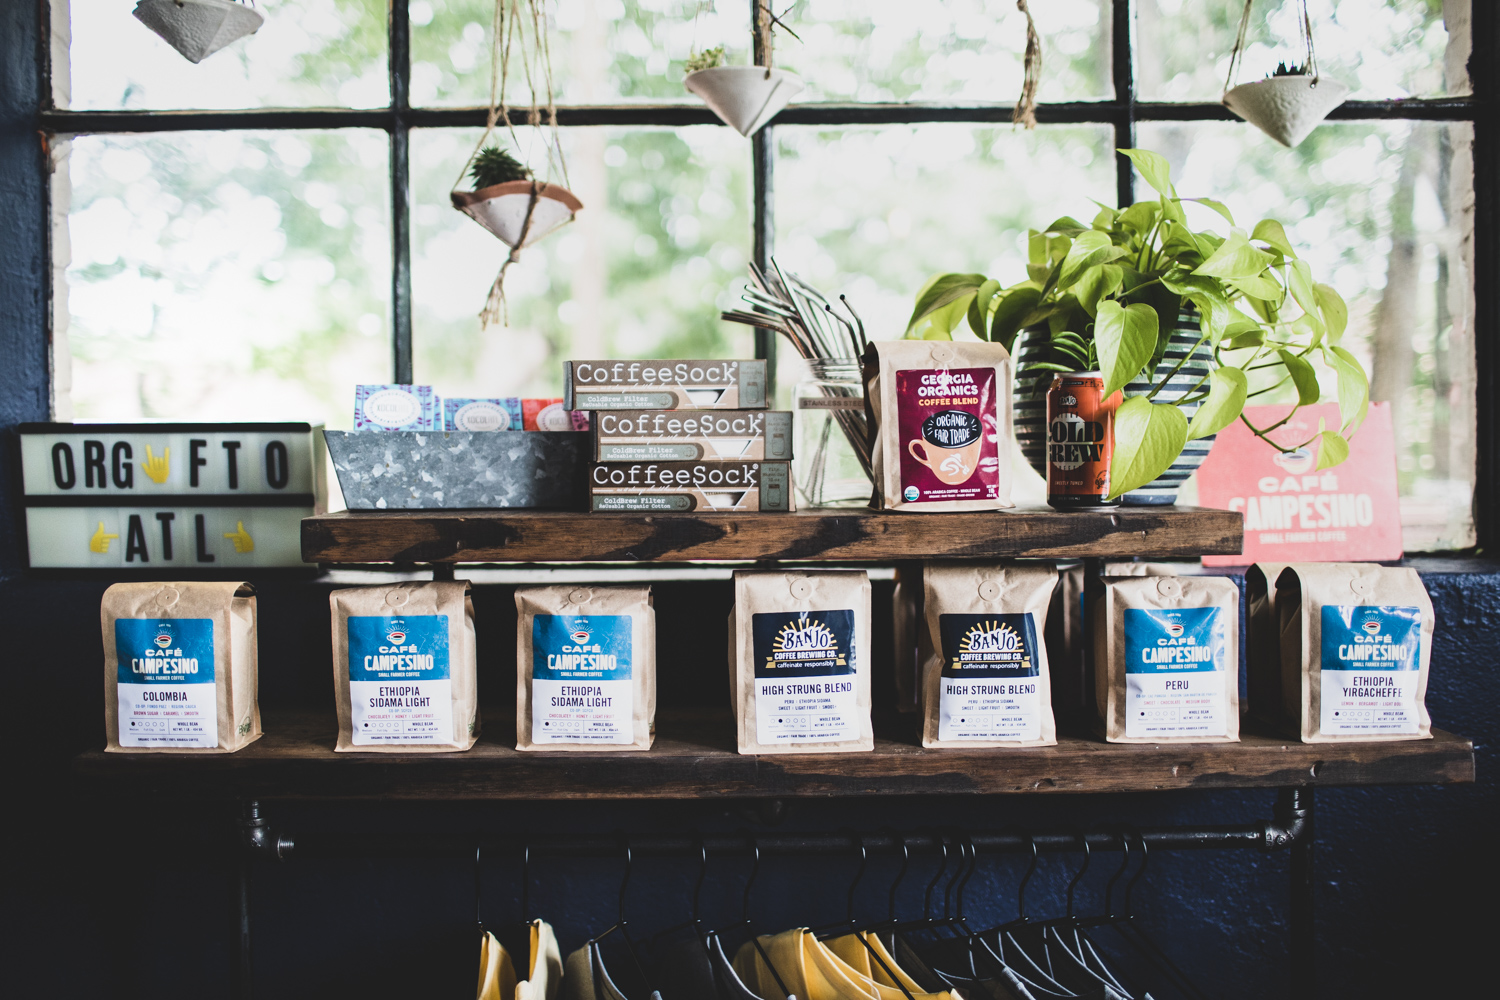 Coffee beans and other merchandise for sale at Banjo Coffee.